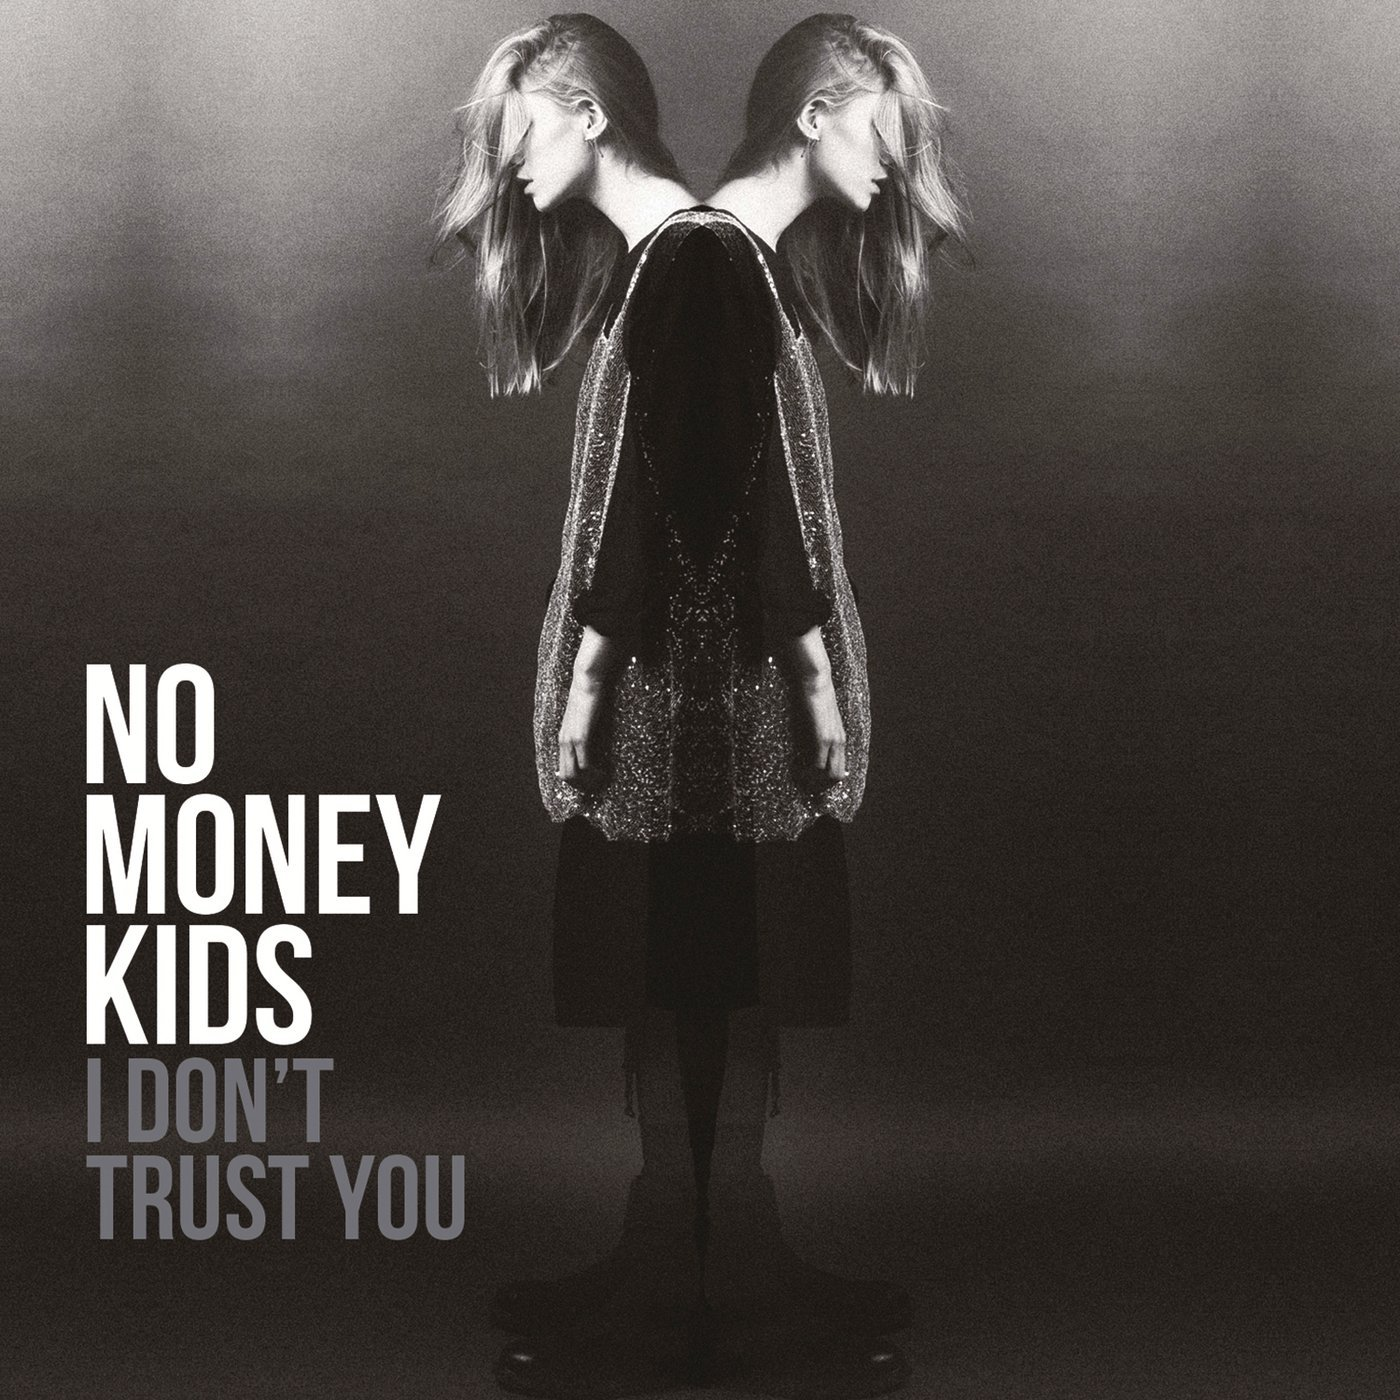 NO MONEY KIDS – Man